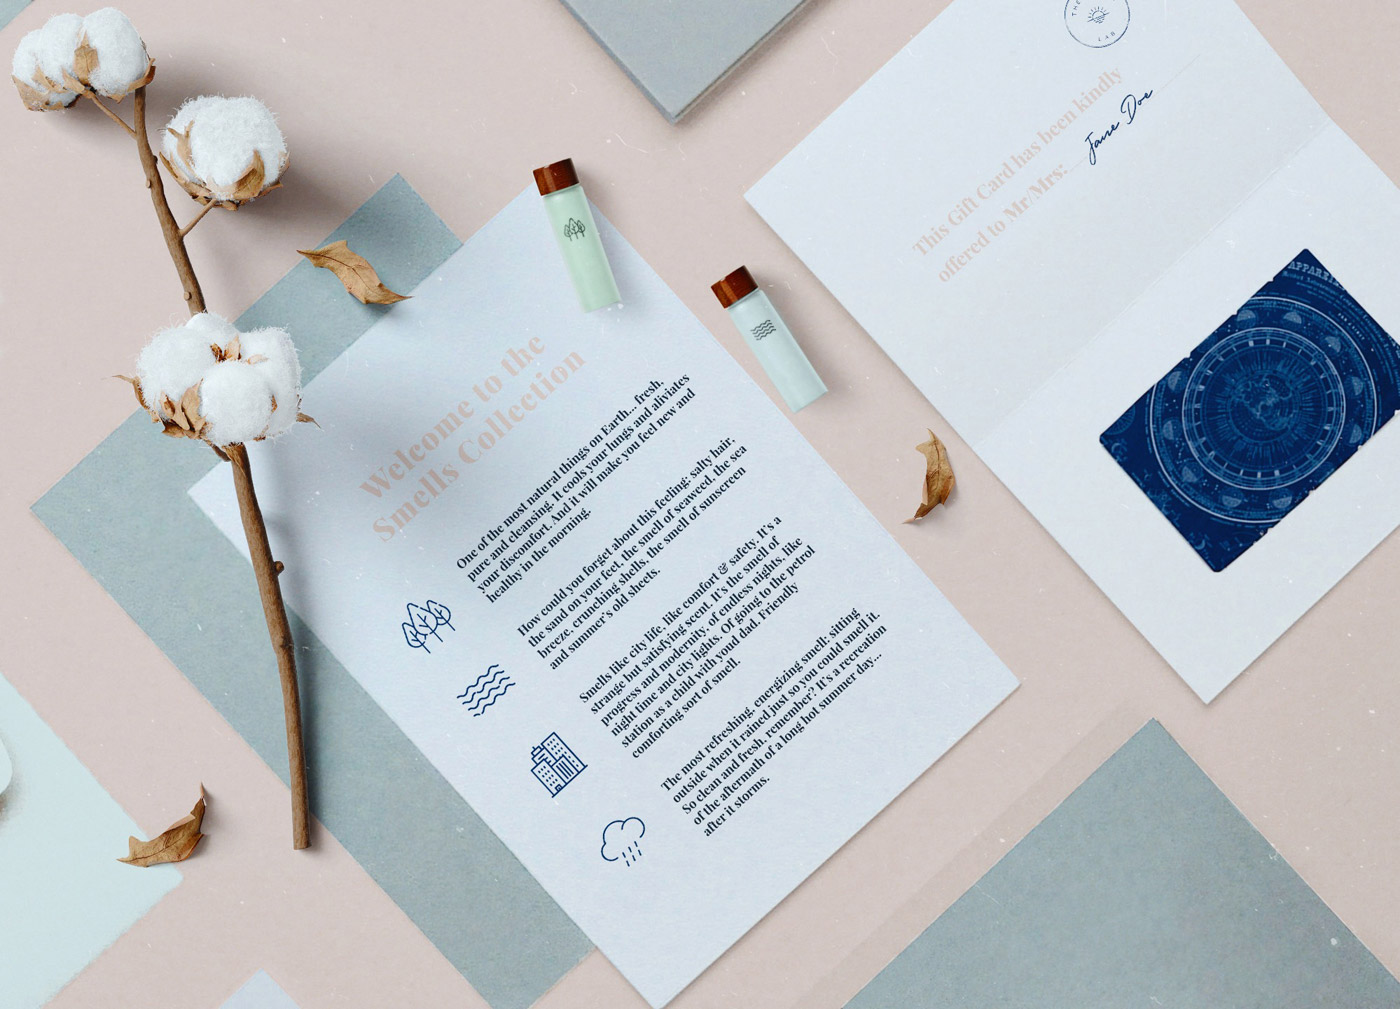 Shop on Mars - University graphic design project by Cristina Reverté